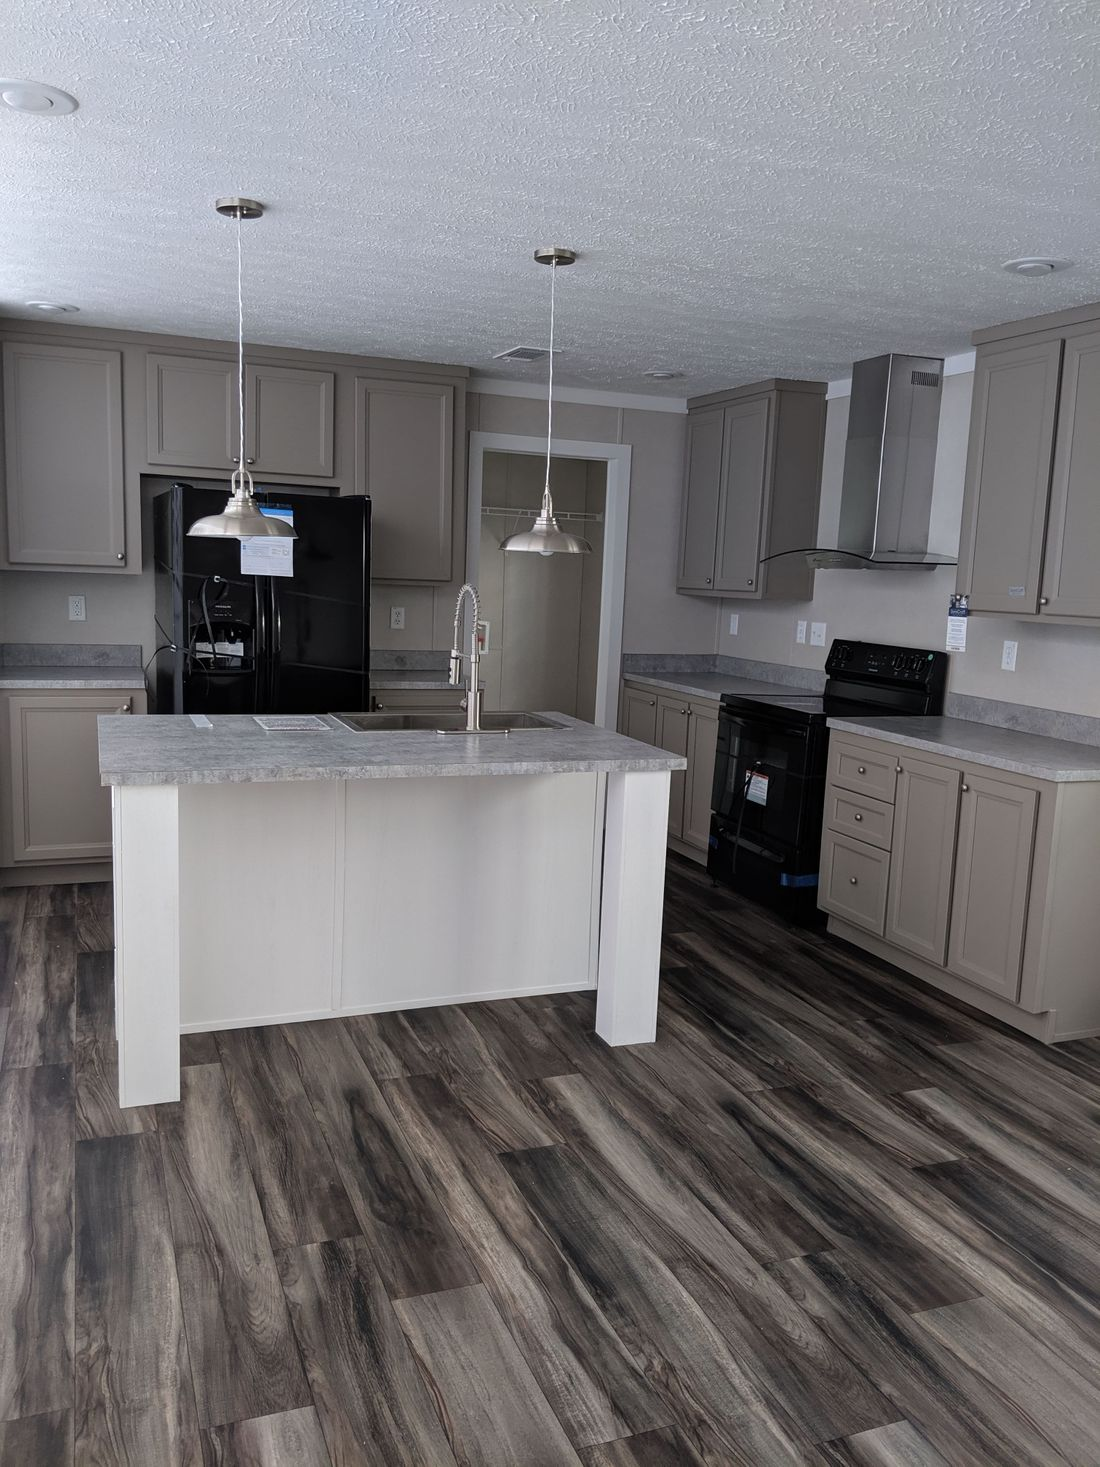 The CS2856-A Kitchen. This Manufactured Mobile Home features 4 bedrooms and 2 baths.